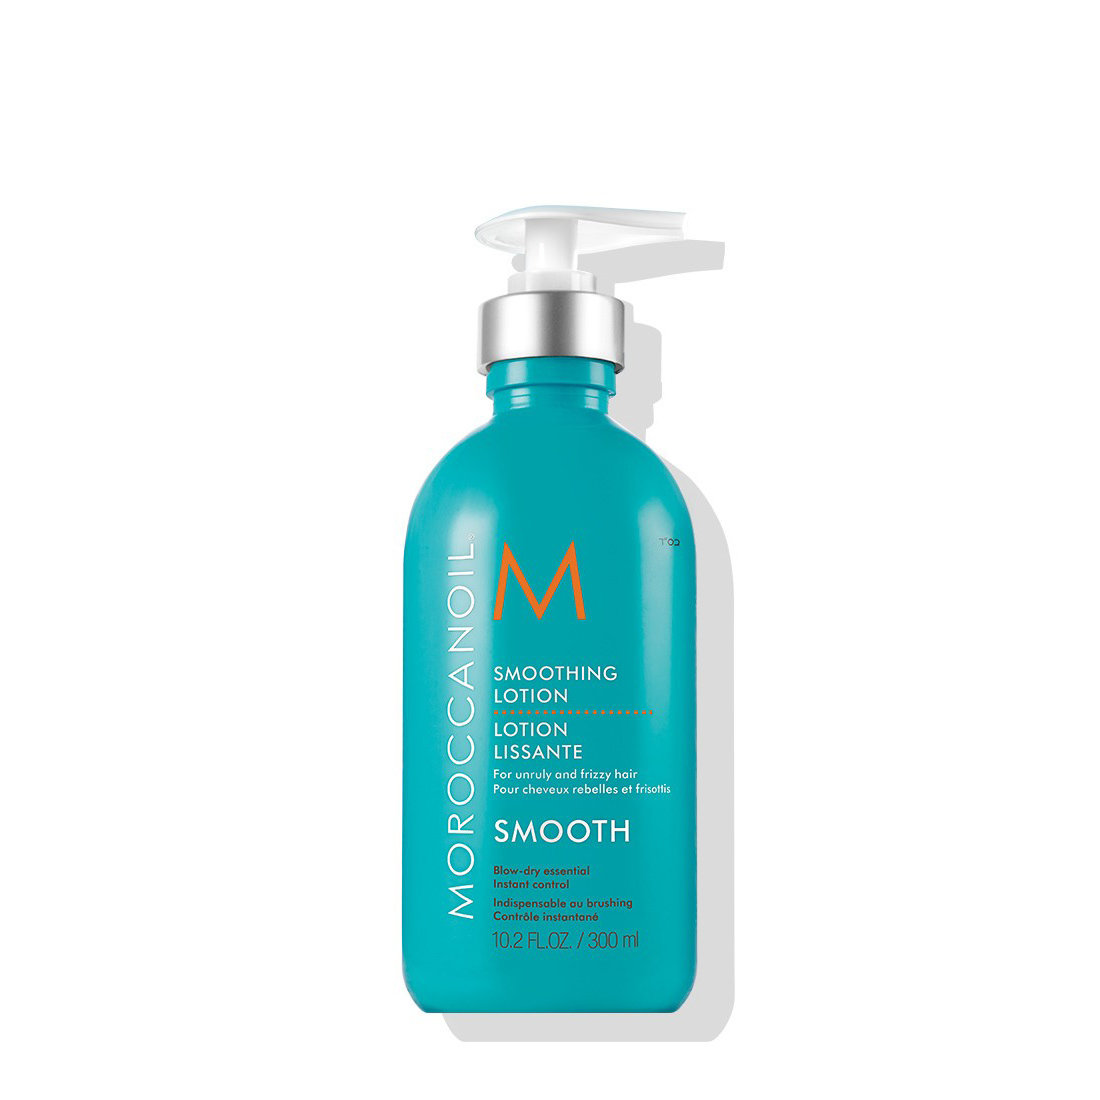 Moroccanoil Smoothing Lotion 300 ml | Loción Suavizante